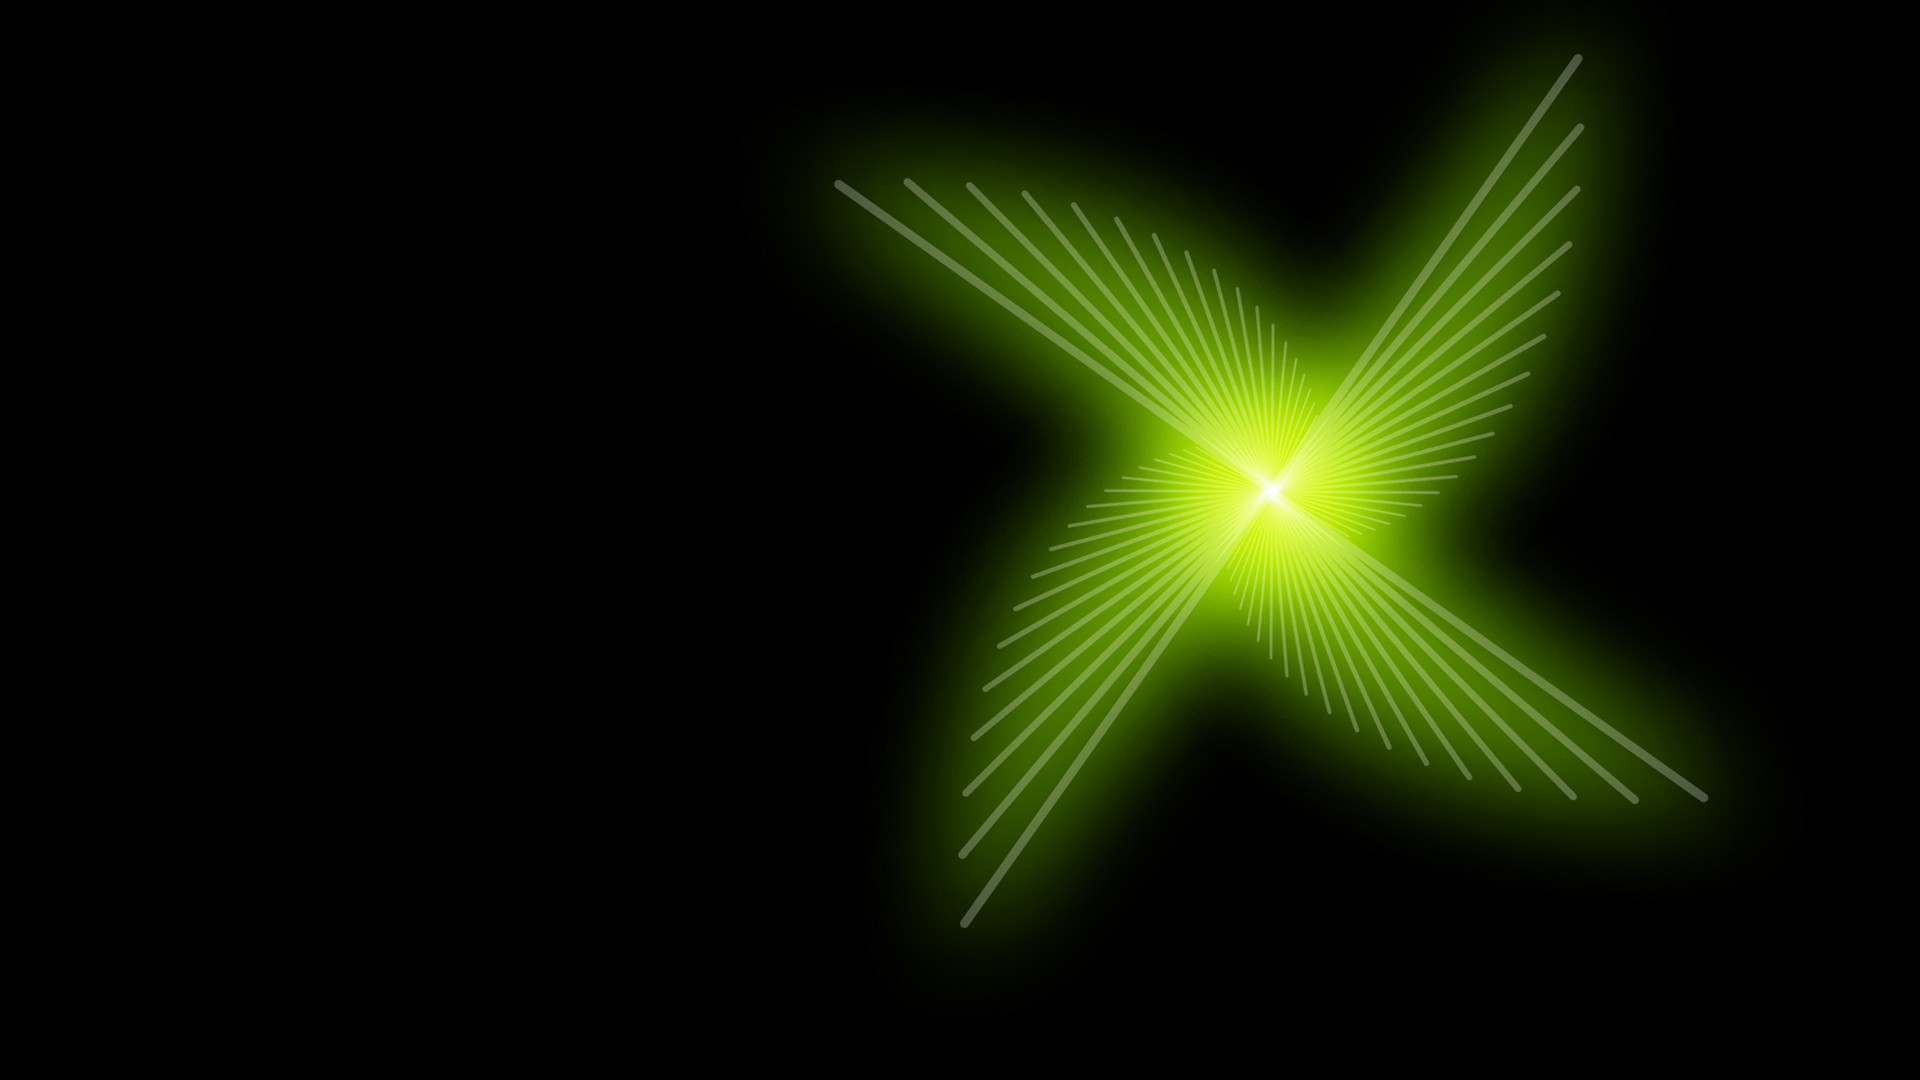 Black And Green Abstract Wallpaper 1899 Hd Wallpapers in Abstract 1920x1080